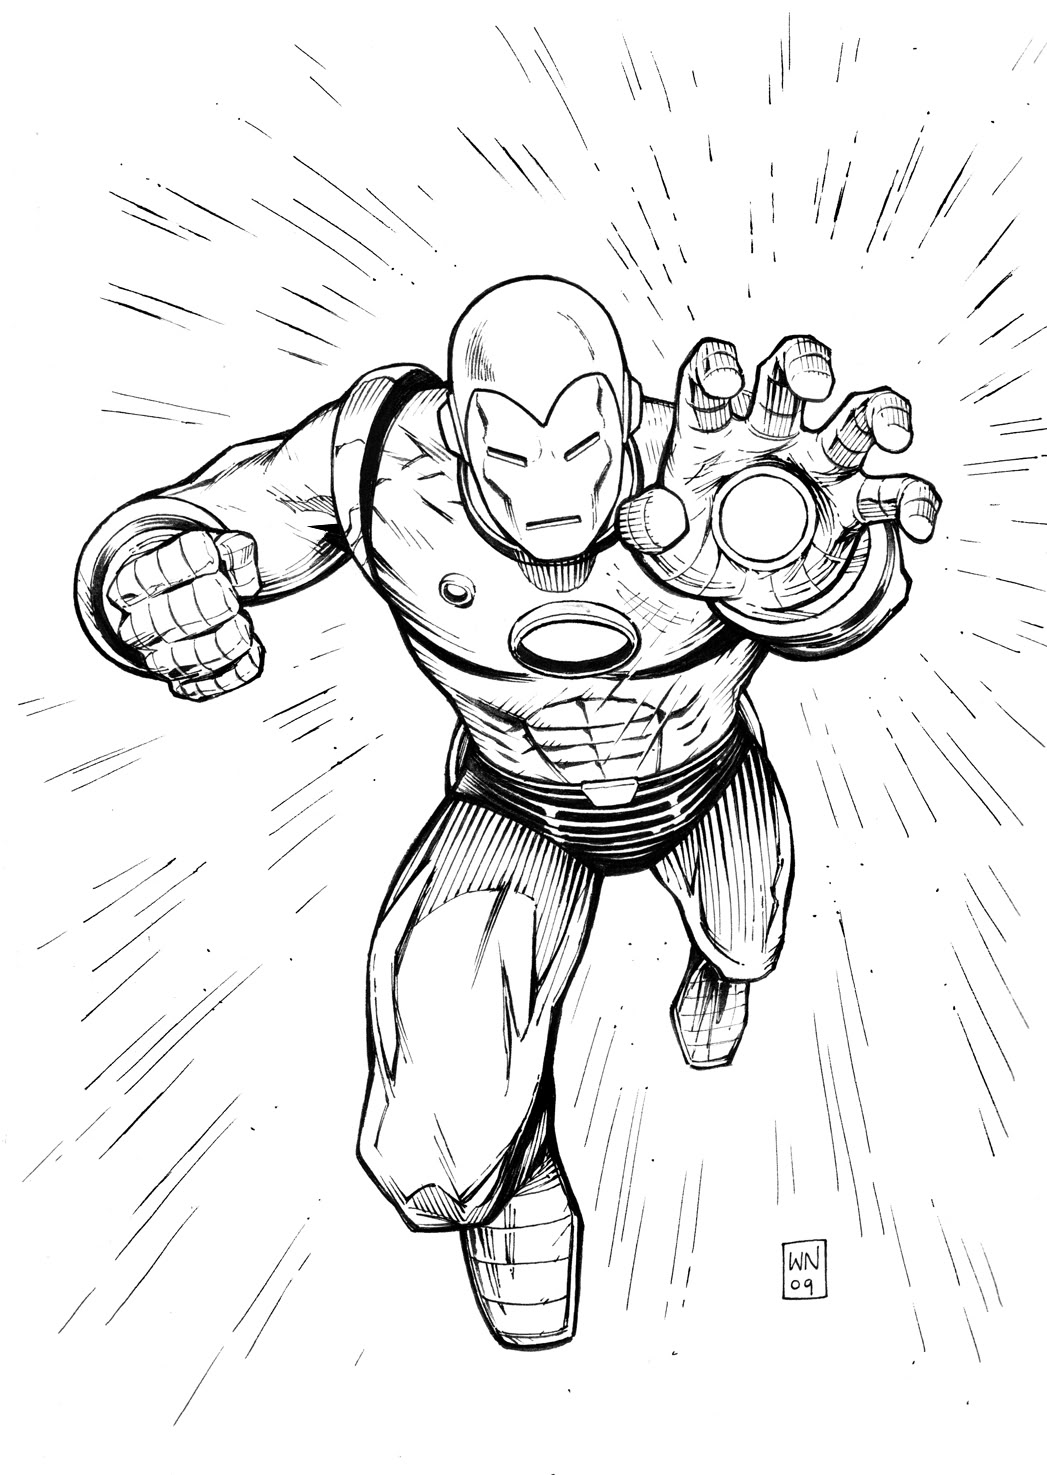 Adult Beauty Iron Man Printable Coloring Pages Gallery Images best free printable iron man coloring pages for kids color images